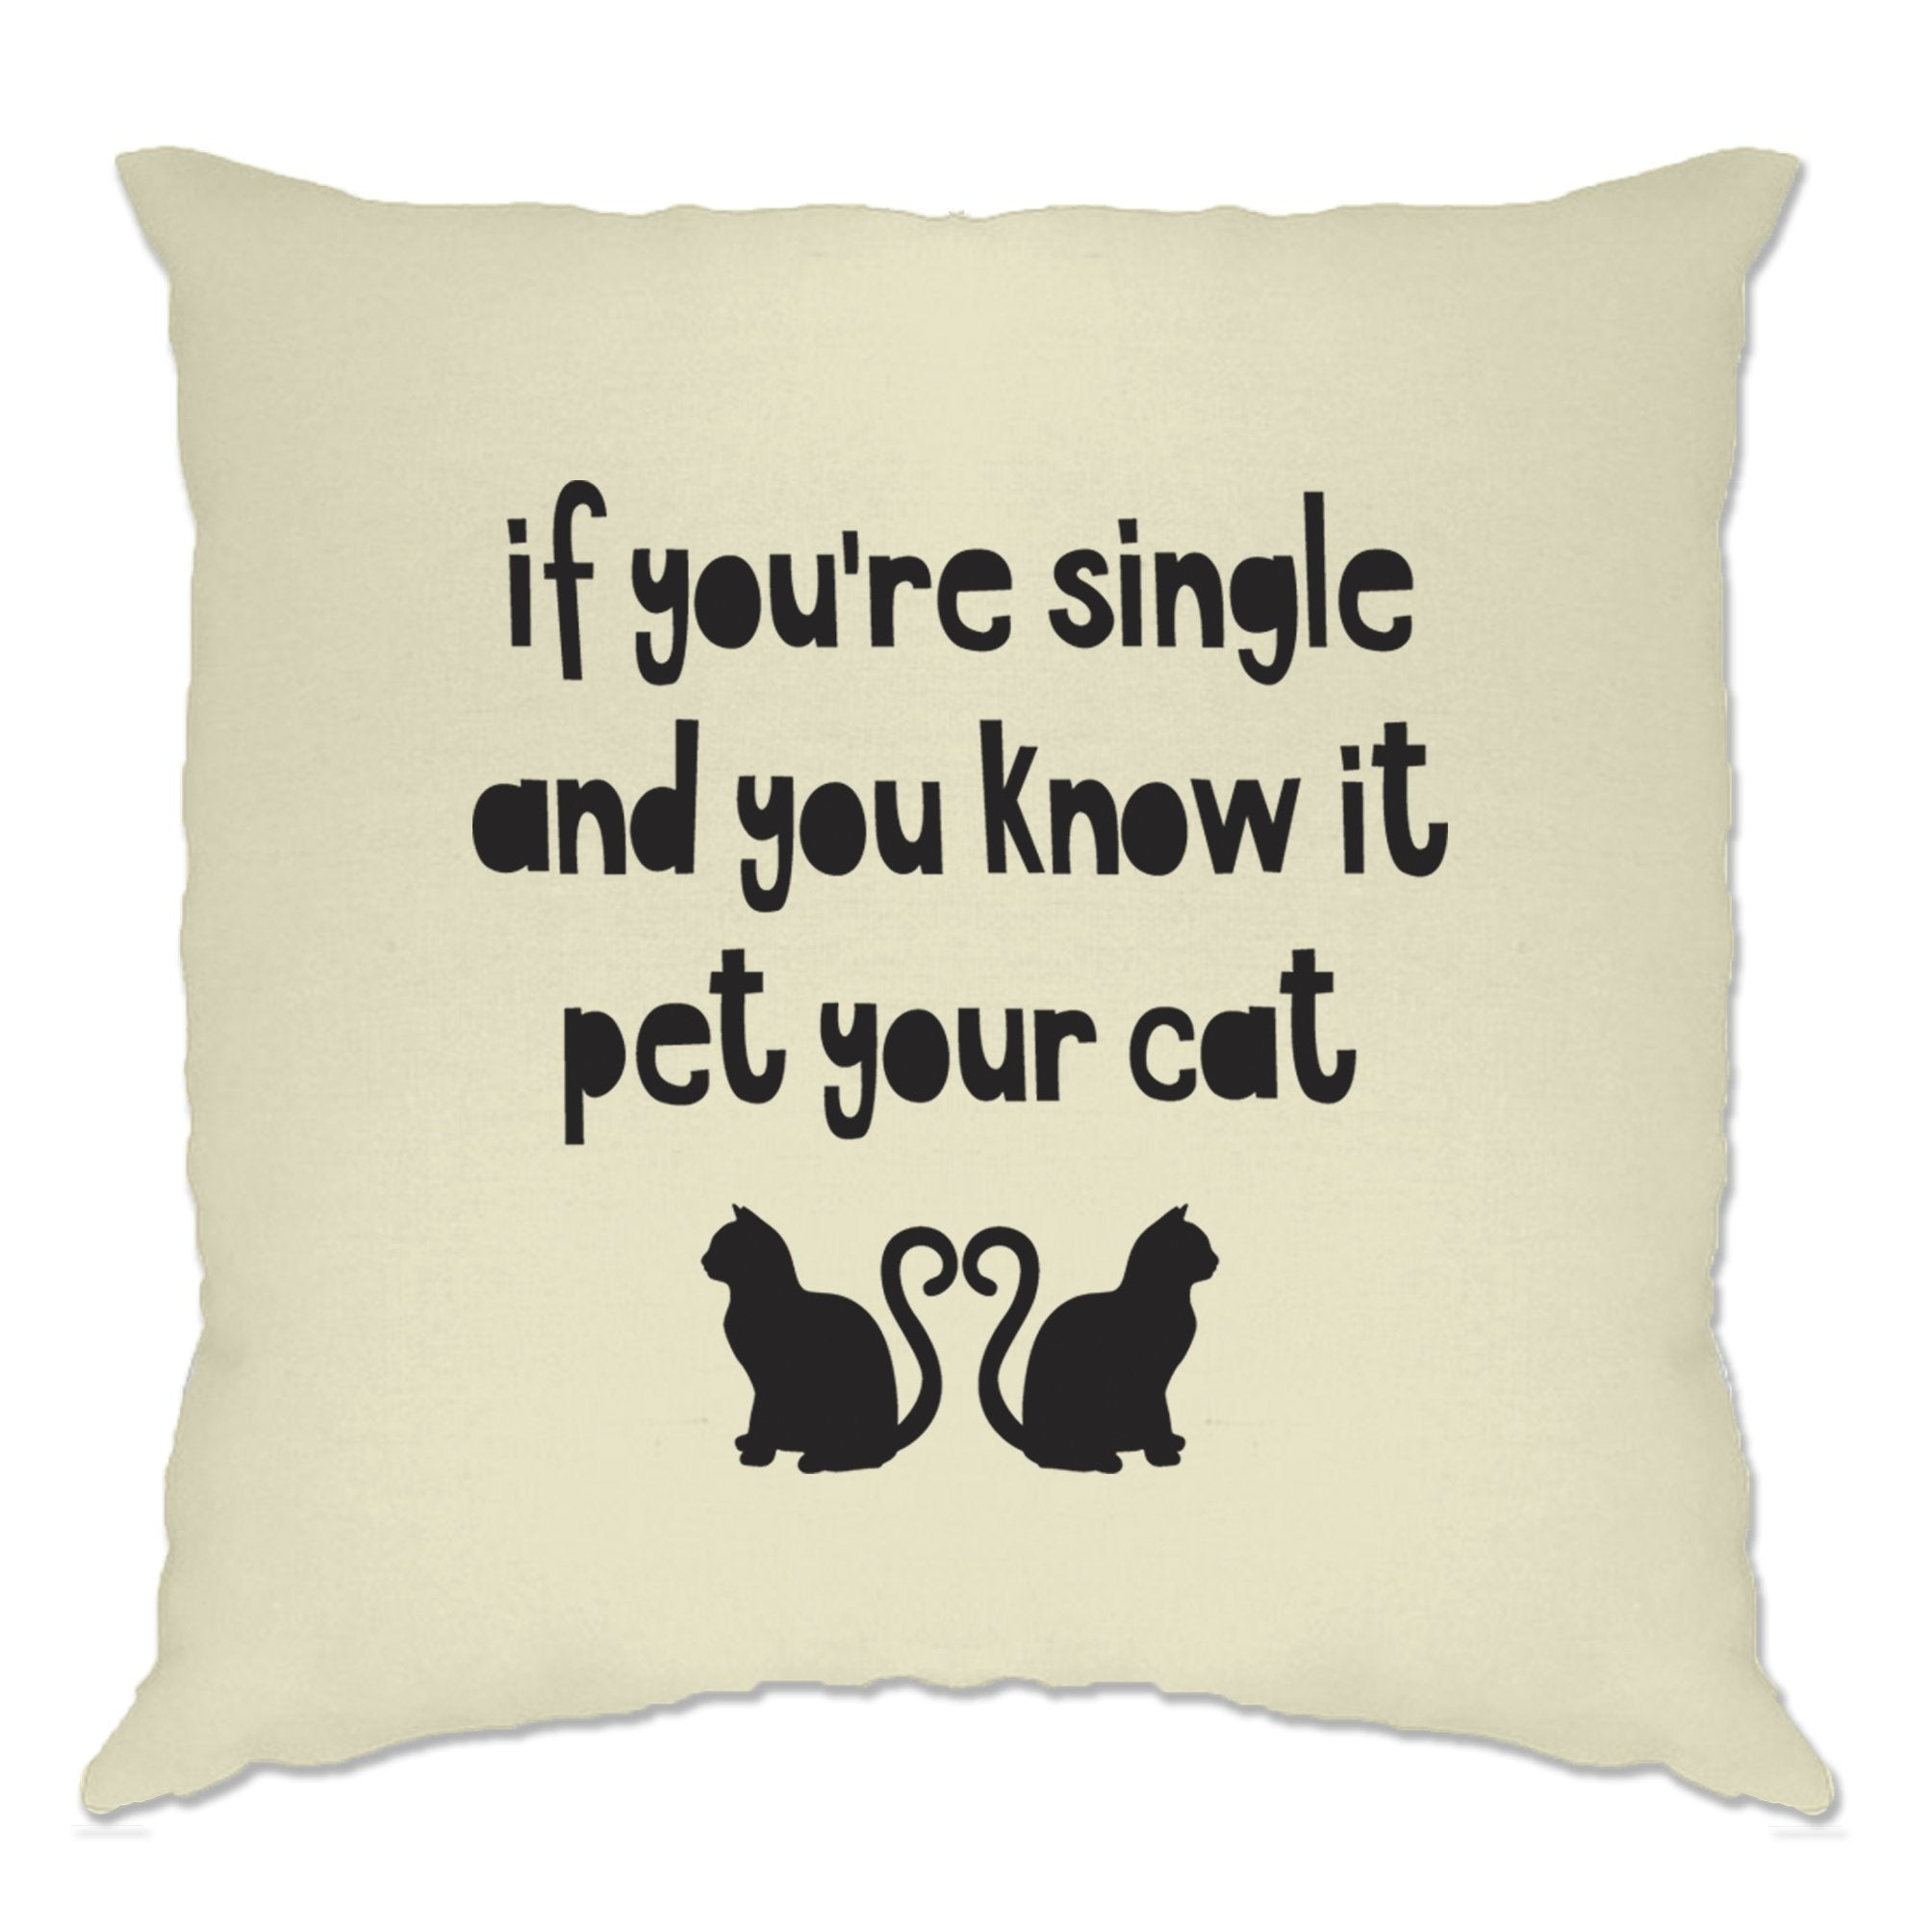 Valentines Cushion Cover Single And You Know It Joke